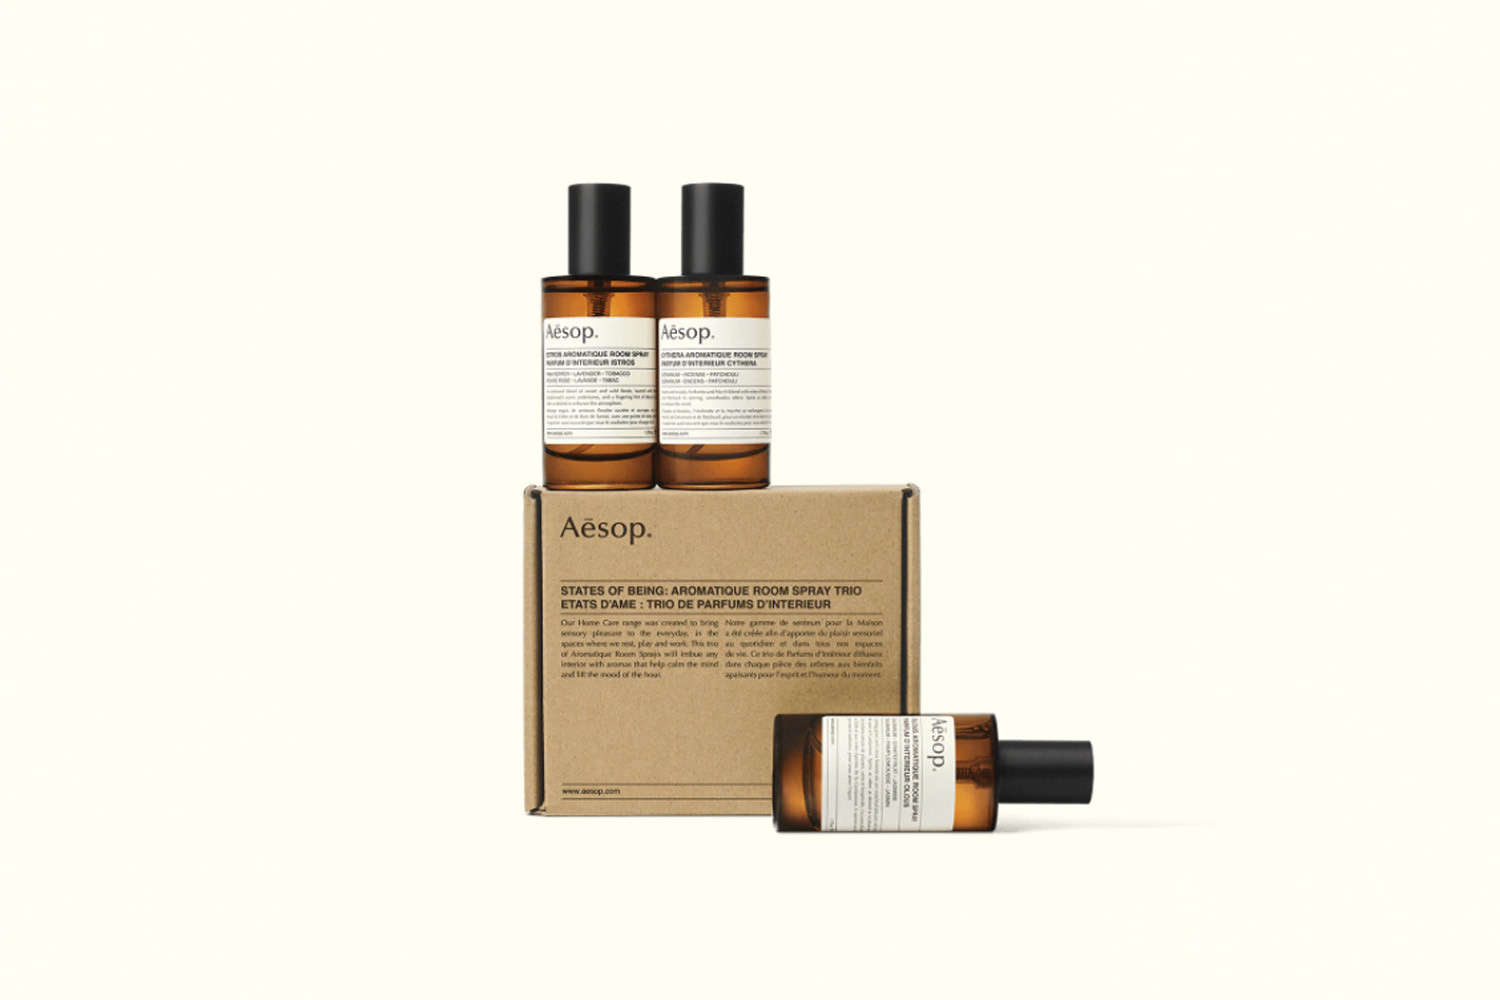 Remodelista Gift Guide 2020 Gifts for the Home Fragrance Snob The States of Being Aromatique Room Spray Trio includes all three of Aesop&#8\2\17;s fragranced room sprays to test out around the house; \$\1\10 for the set at Aesop.